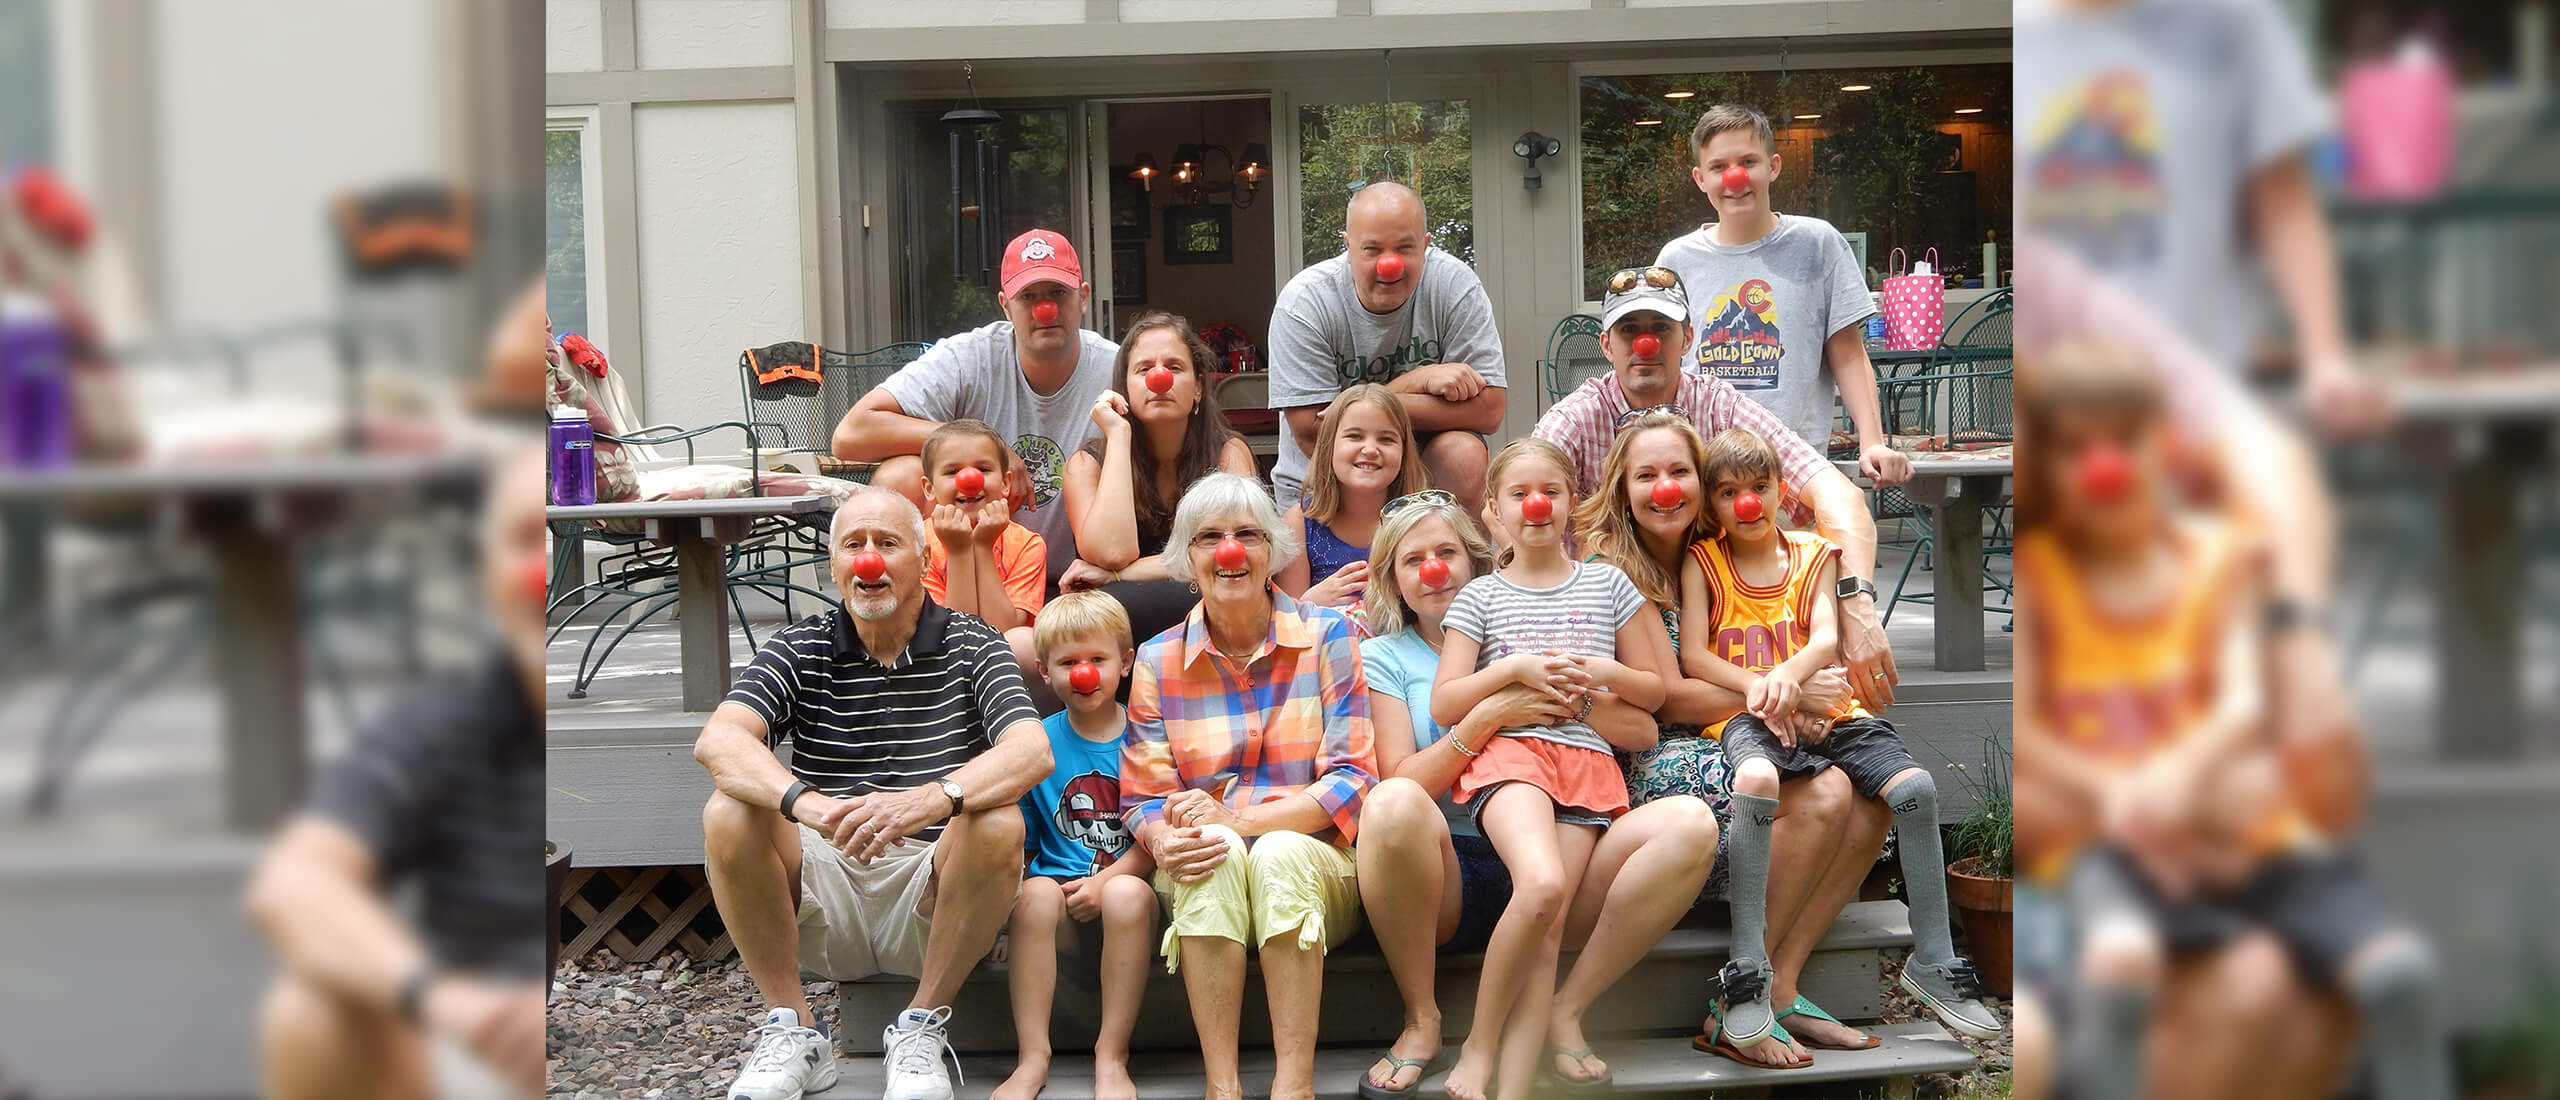 Clowning Around - Doug Blatt